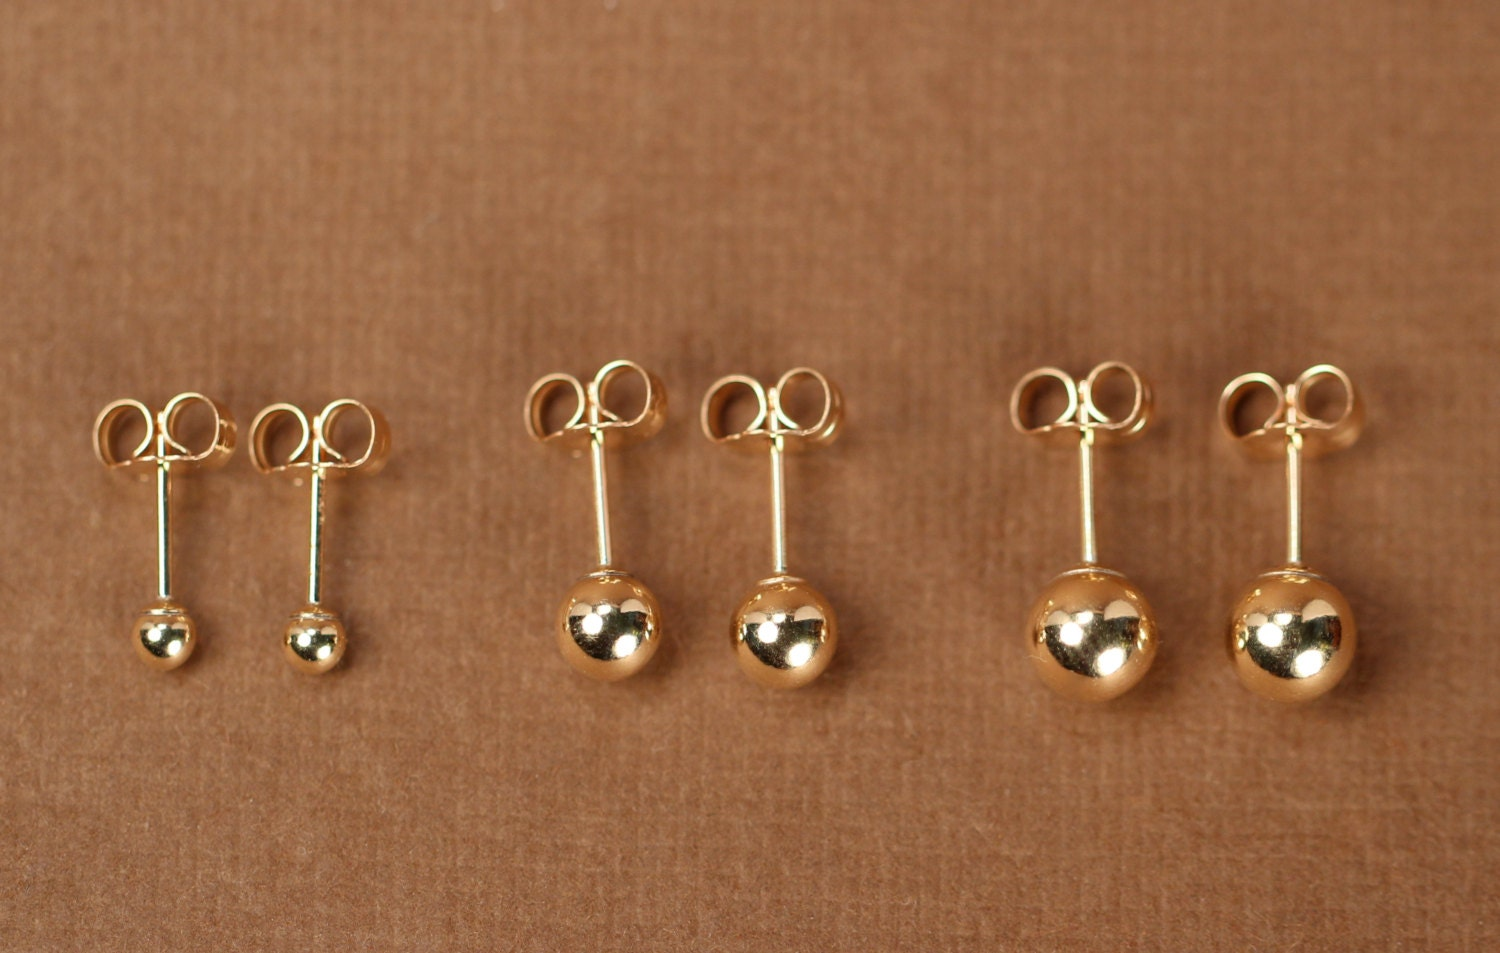 zoom diamond studs screwback il earrings stud tiny gold fullxfull baby small listing solitaire